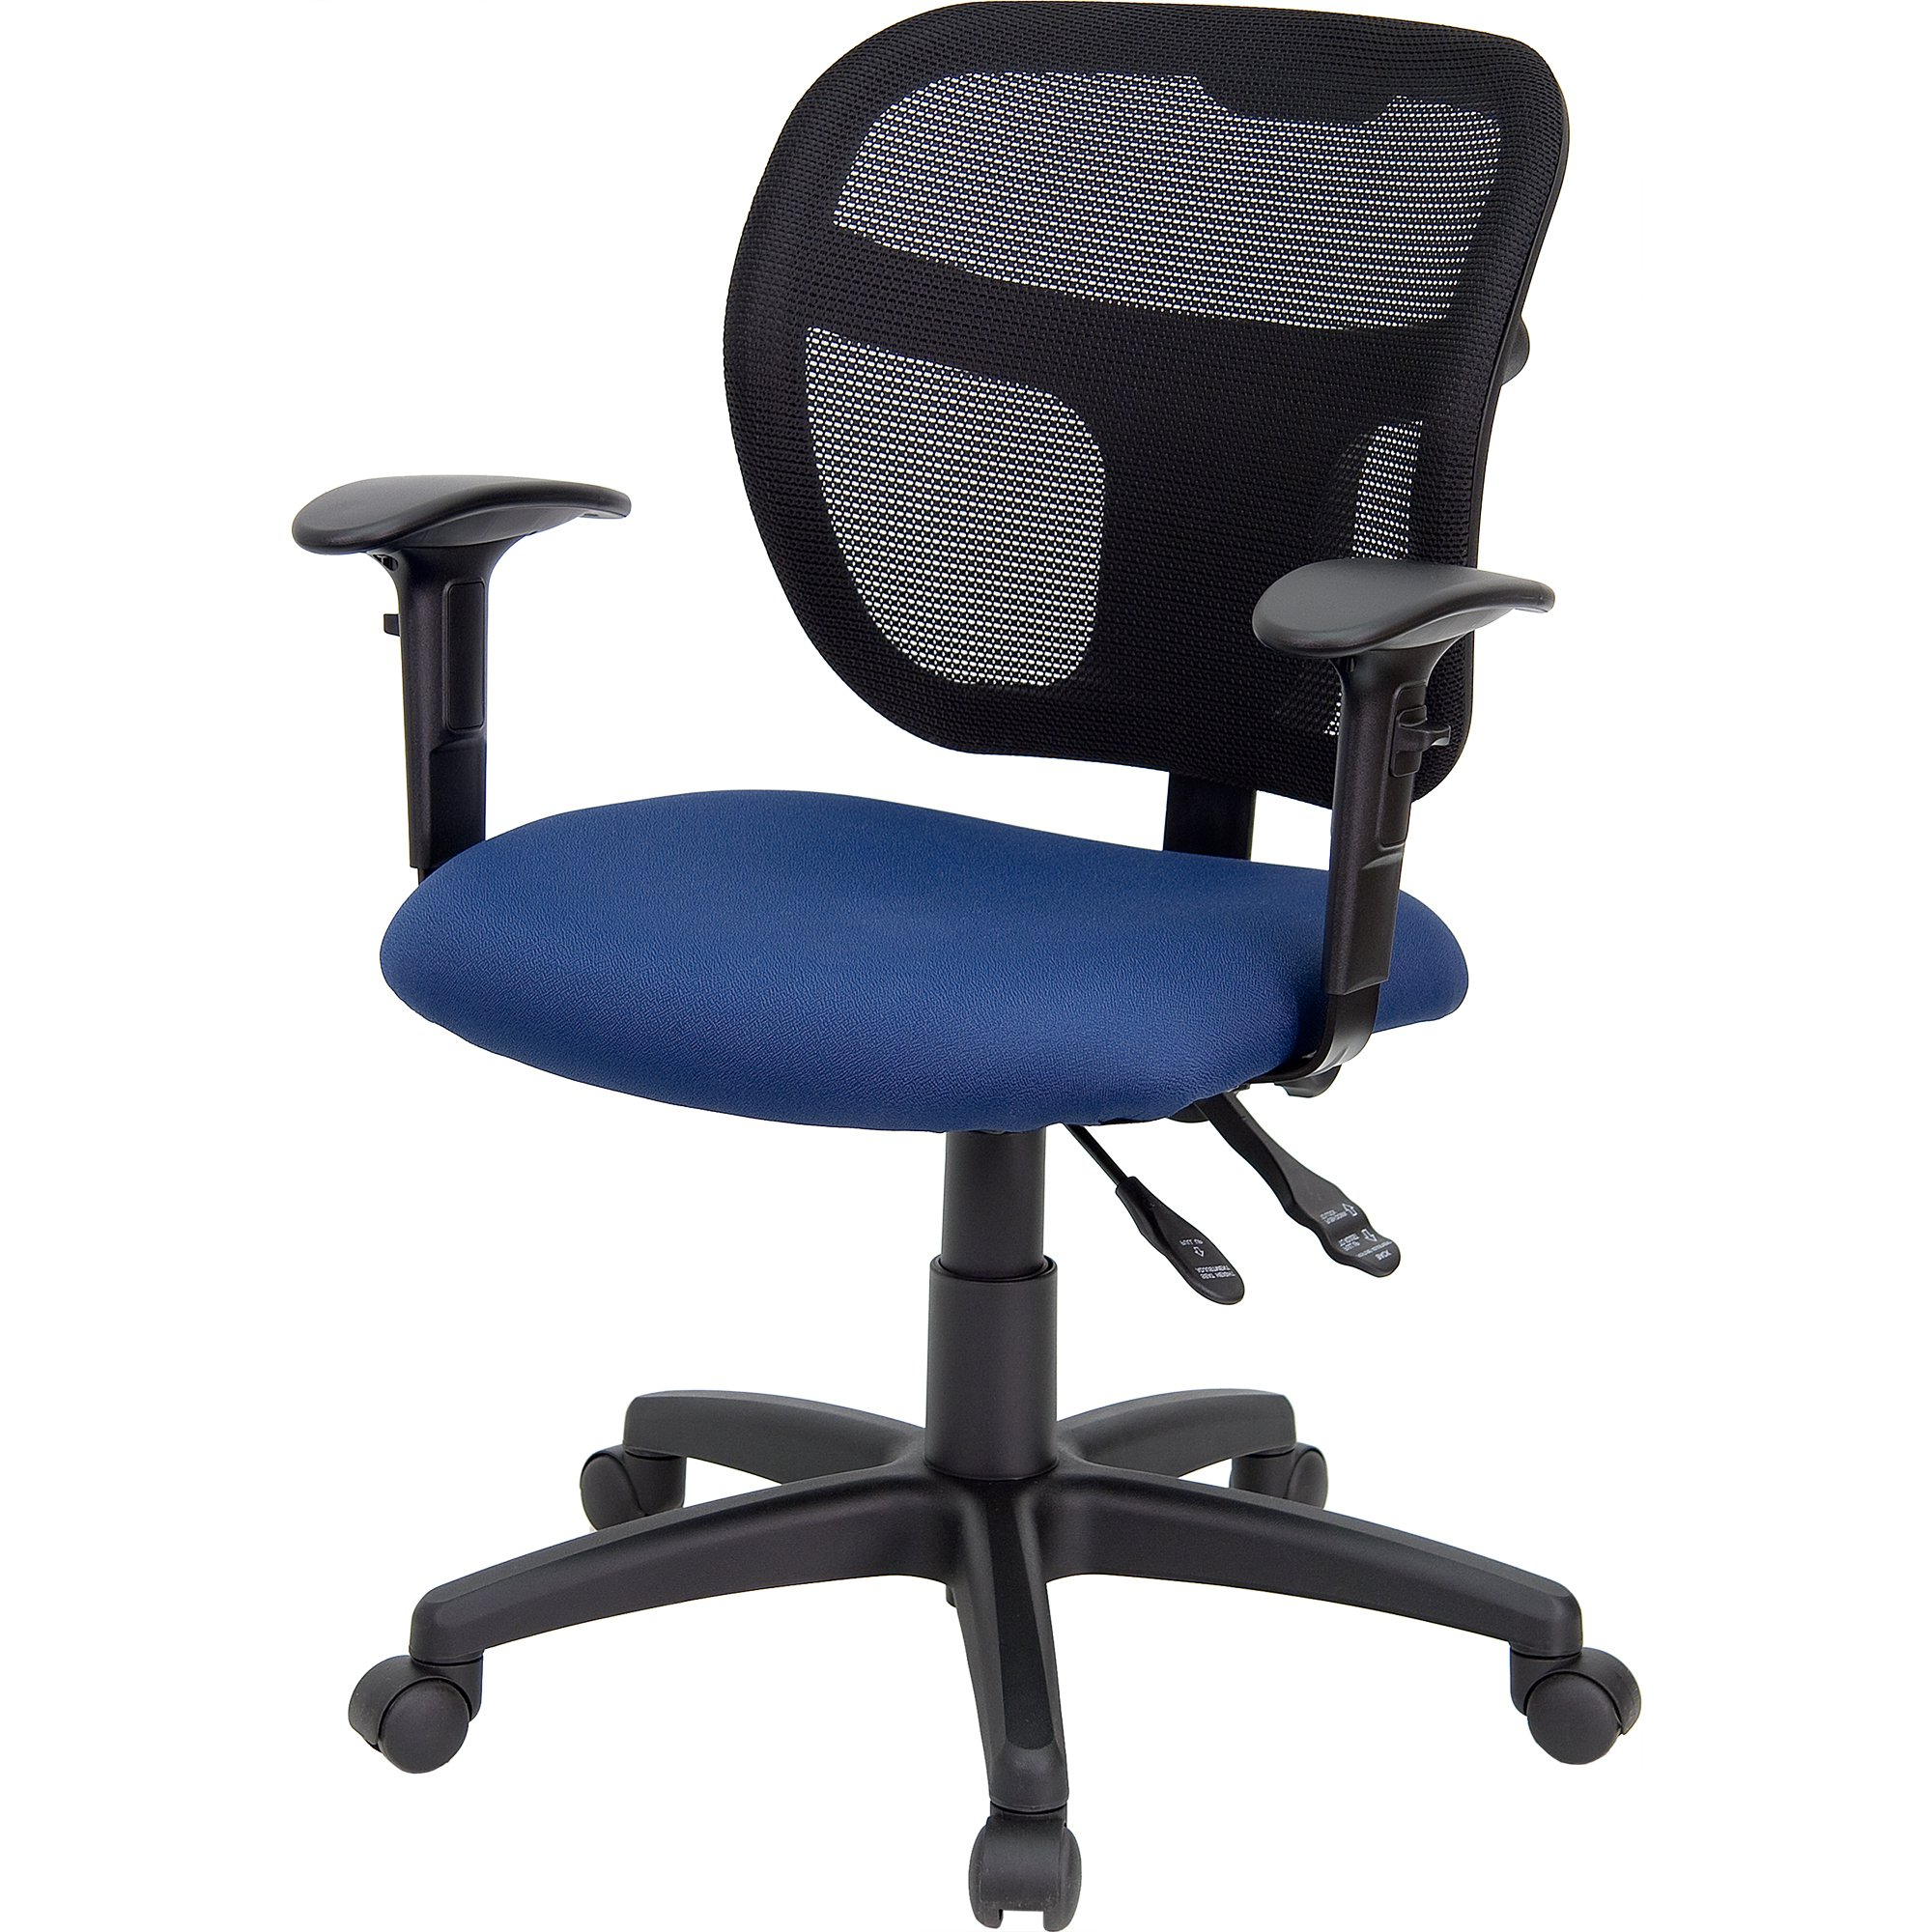 Theo Ii Swivel Chairs Intended For Trendy Shop Theo Mesh Dual Paddle Control Adjustable Swivel Ergonomic (View 13 of 20)